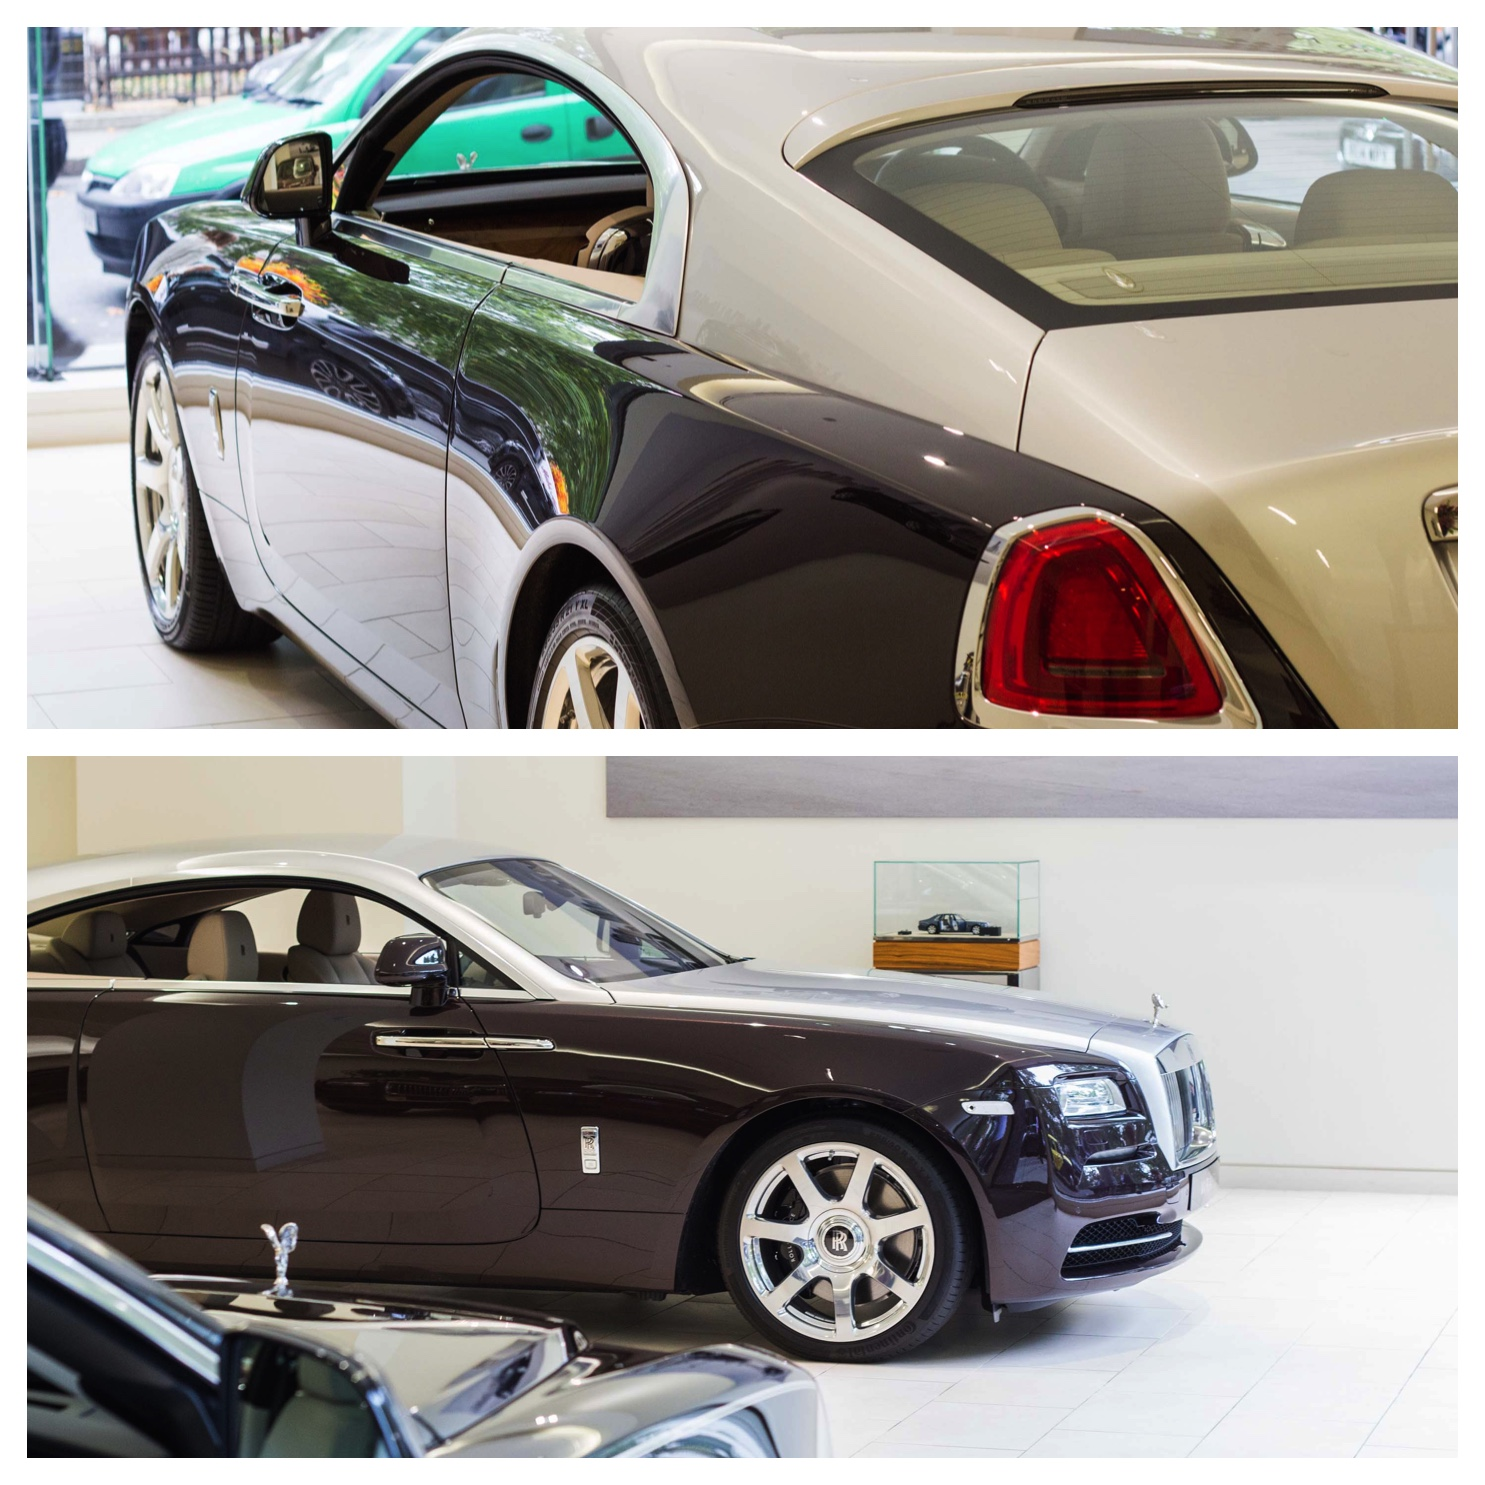 The Most Powerful Rolls-Royce Ever Built, Wraith